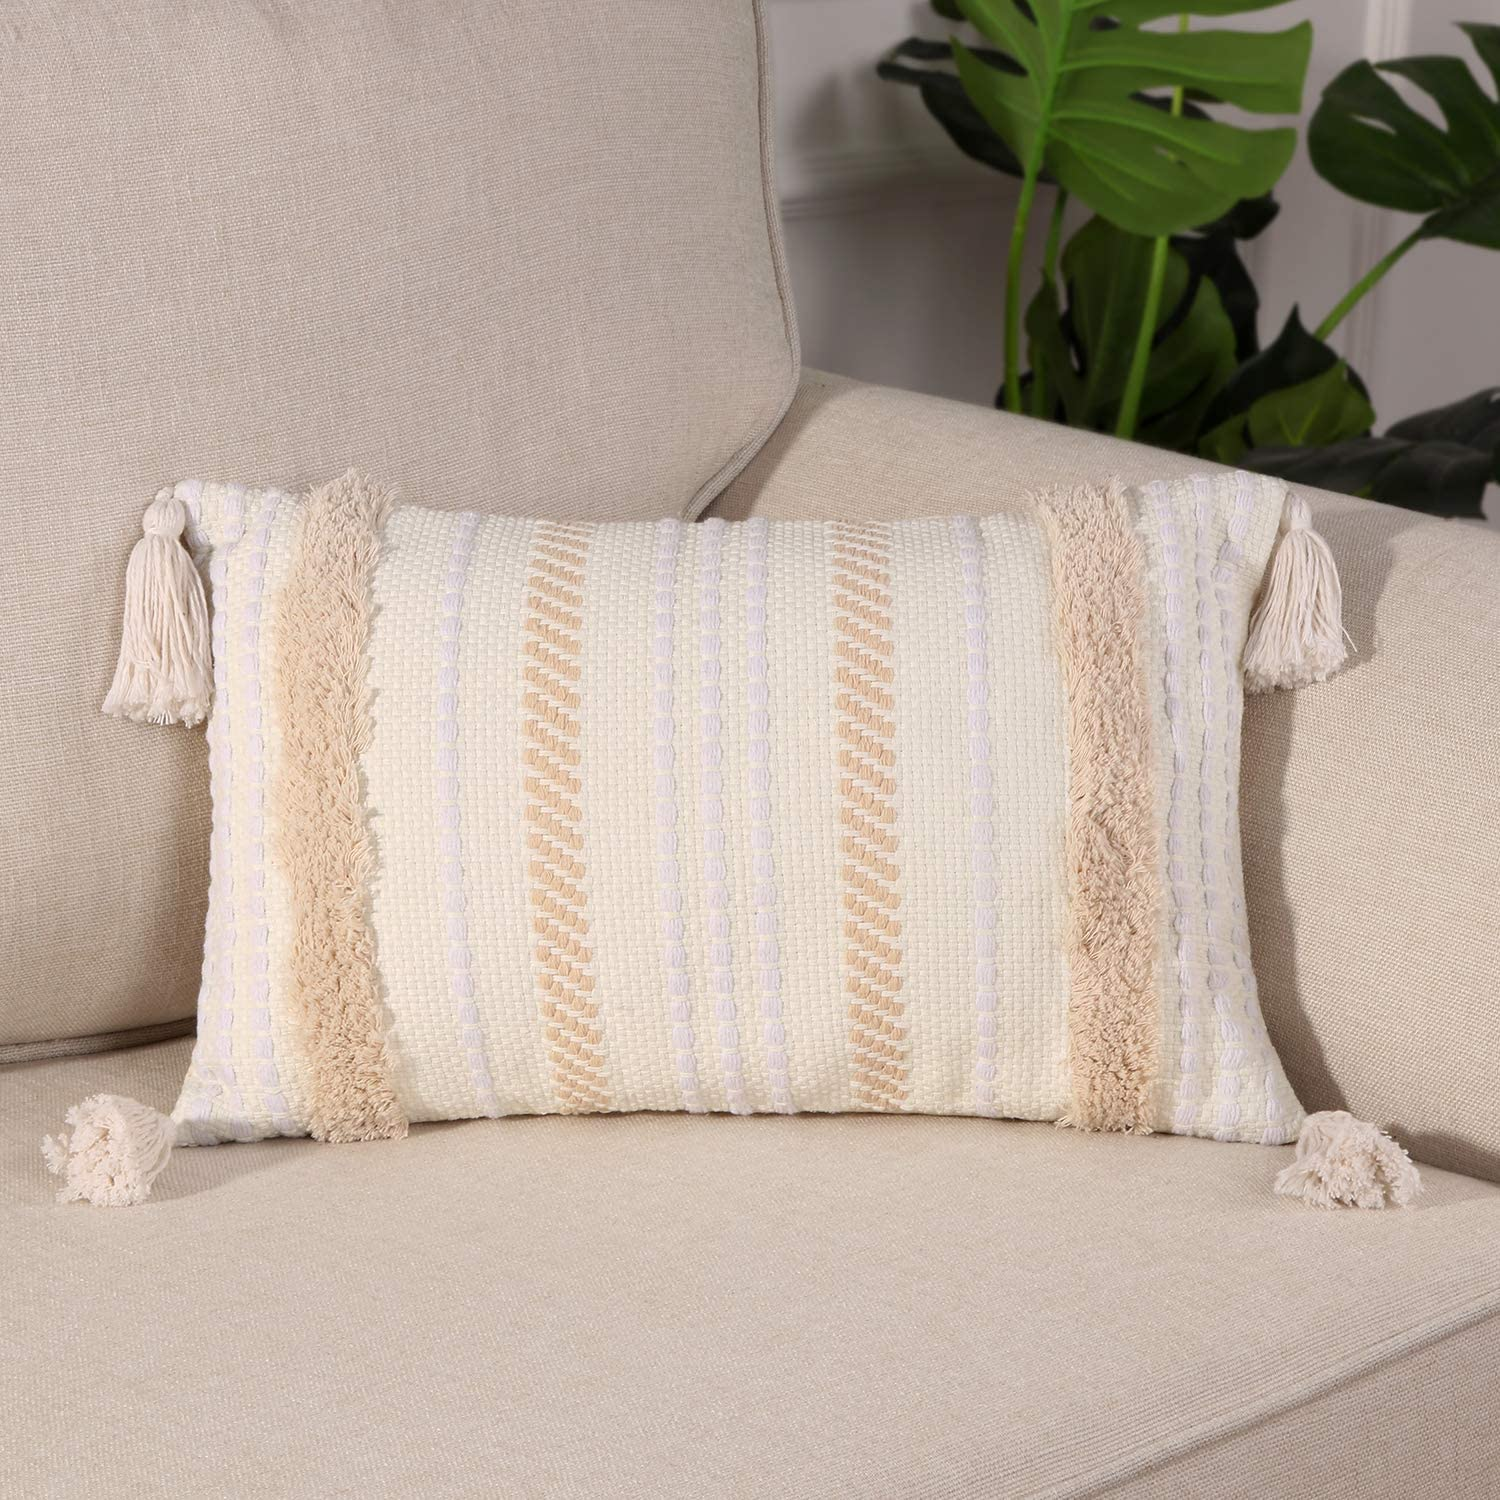 Ailsan Boho Lumbar Decorative Throw Pillow Cover Woven Tufted Pillowcase with Tassels Cute Soft Farmhouse Cushion Pillows Cover for Sofa Couch Bedroom Living Room, 12X20 inch Yellowy Beige